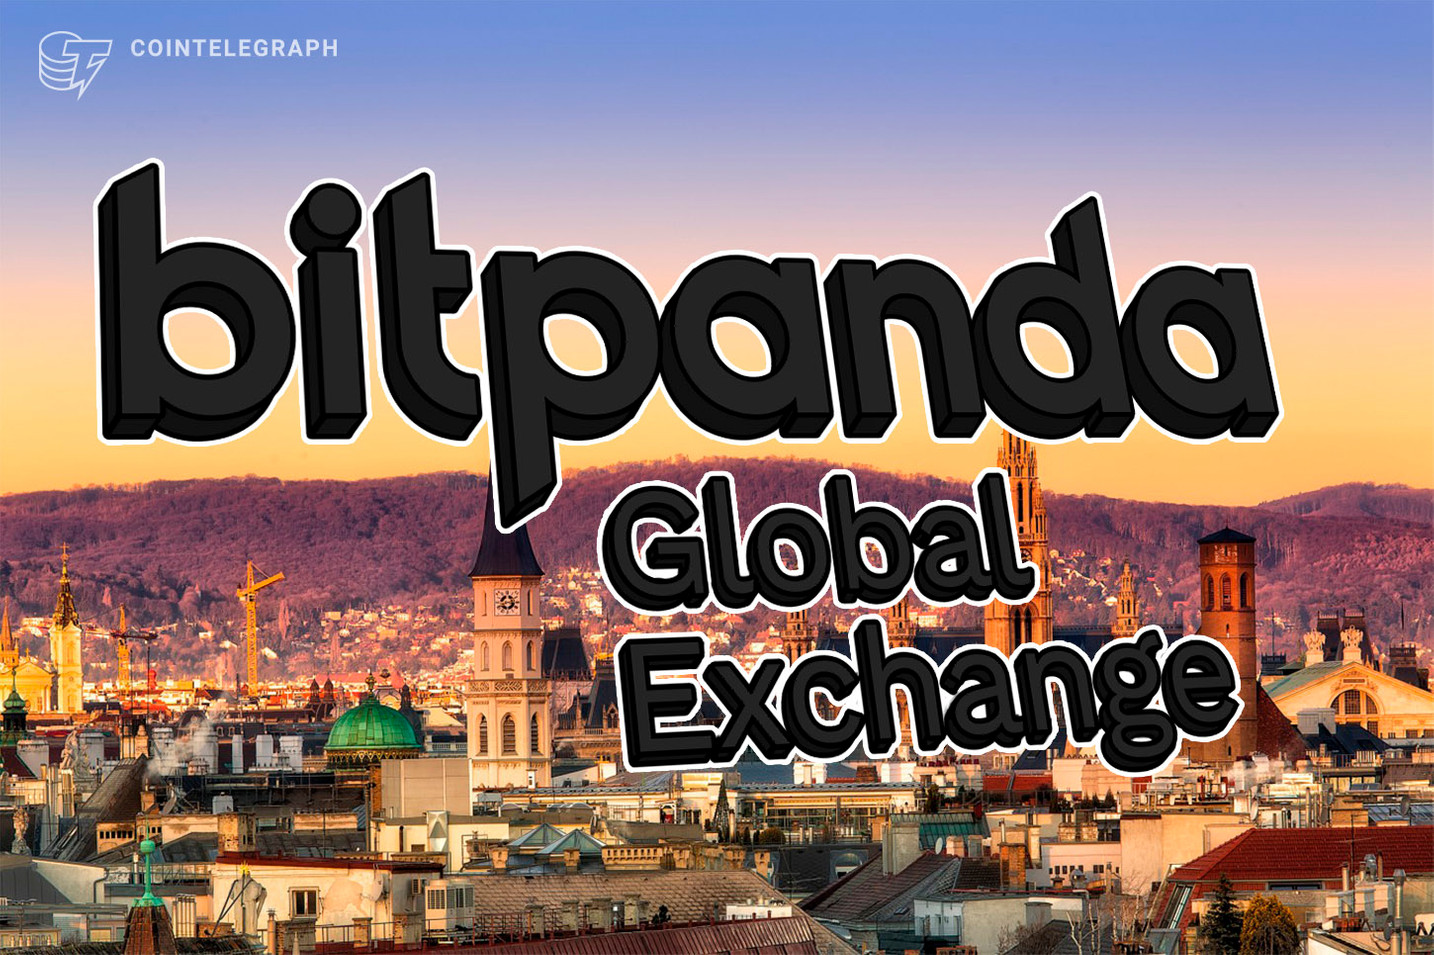 Bitpanda Launches Their Global Exchange After Having Raised €43.6 Million